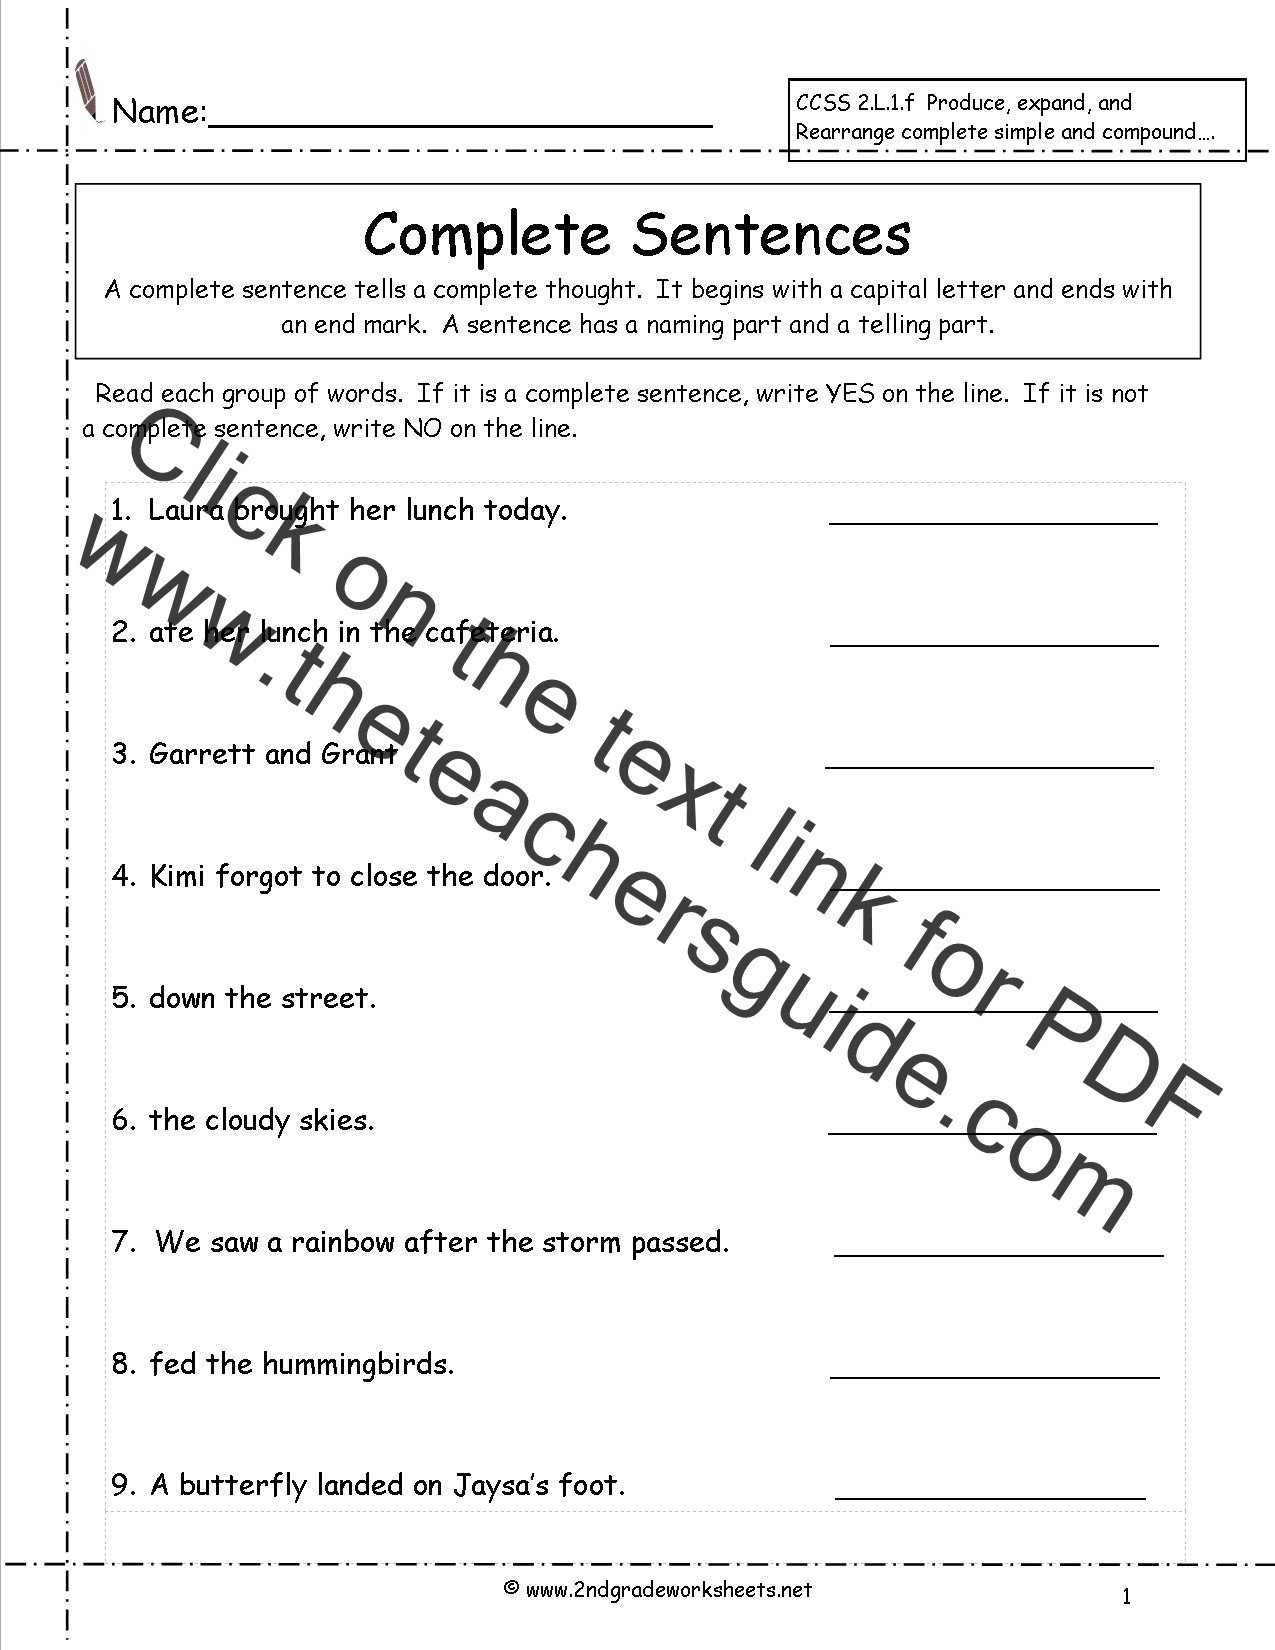 Scrambled Sentences Worksheets 2nd Grade Second Grade Sentences Worksheets Ccss 2 L 1 F Worksheets